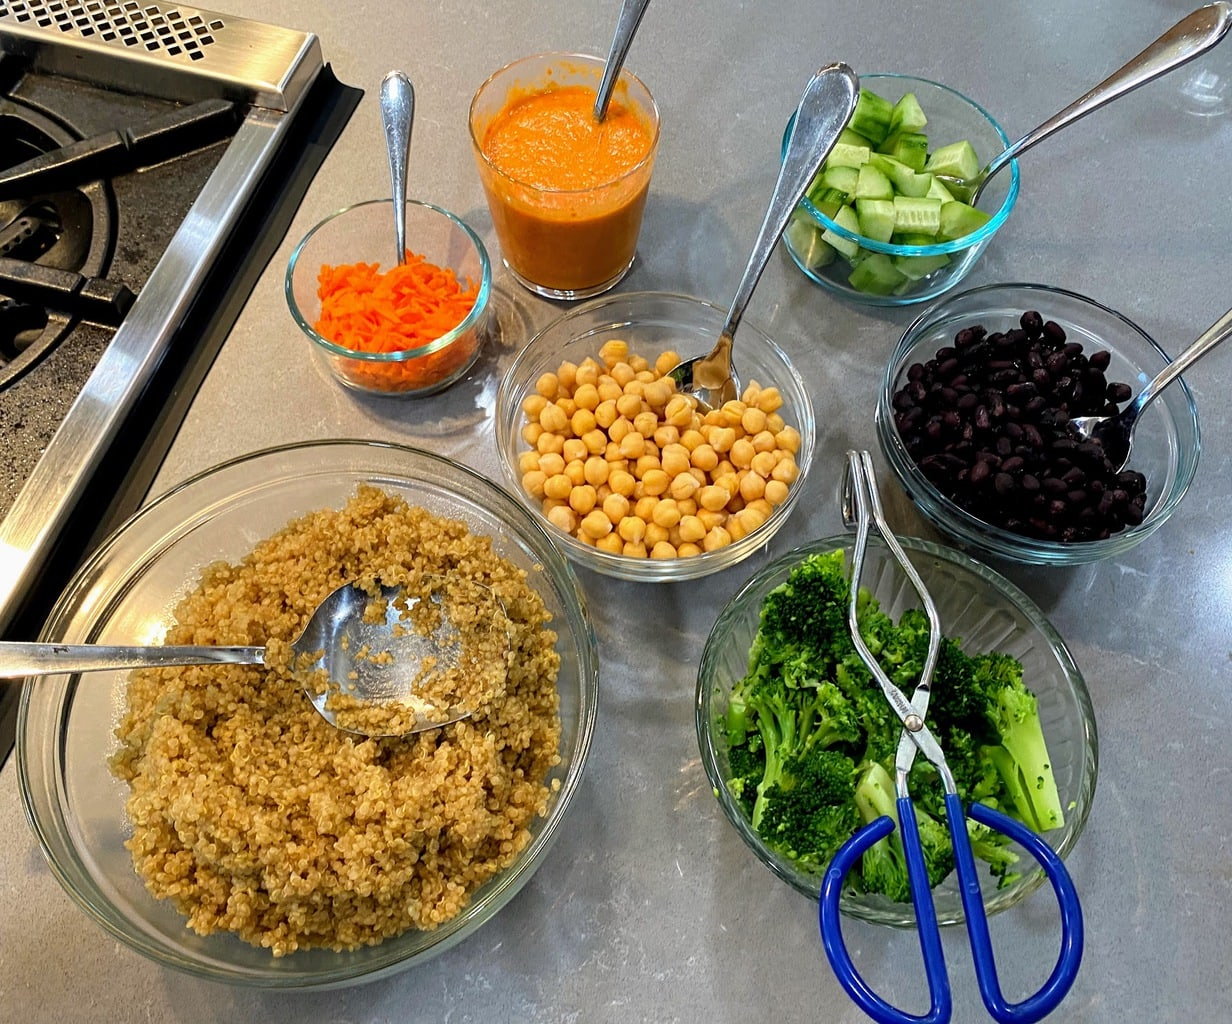 romesco recipe ingredients in different bowls on counter